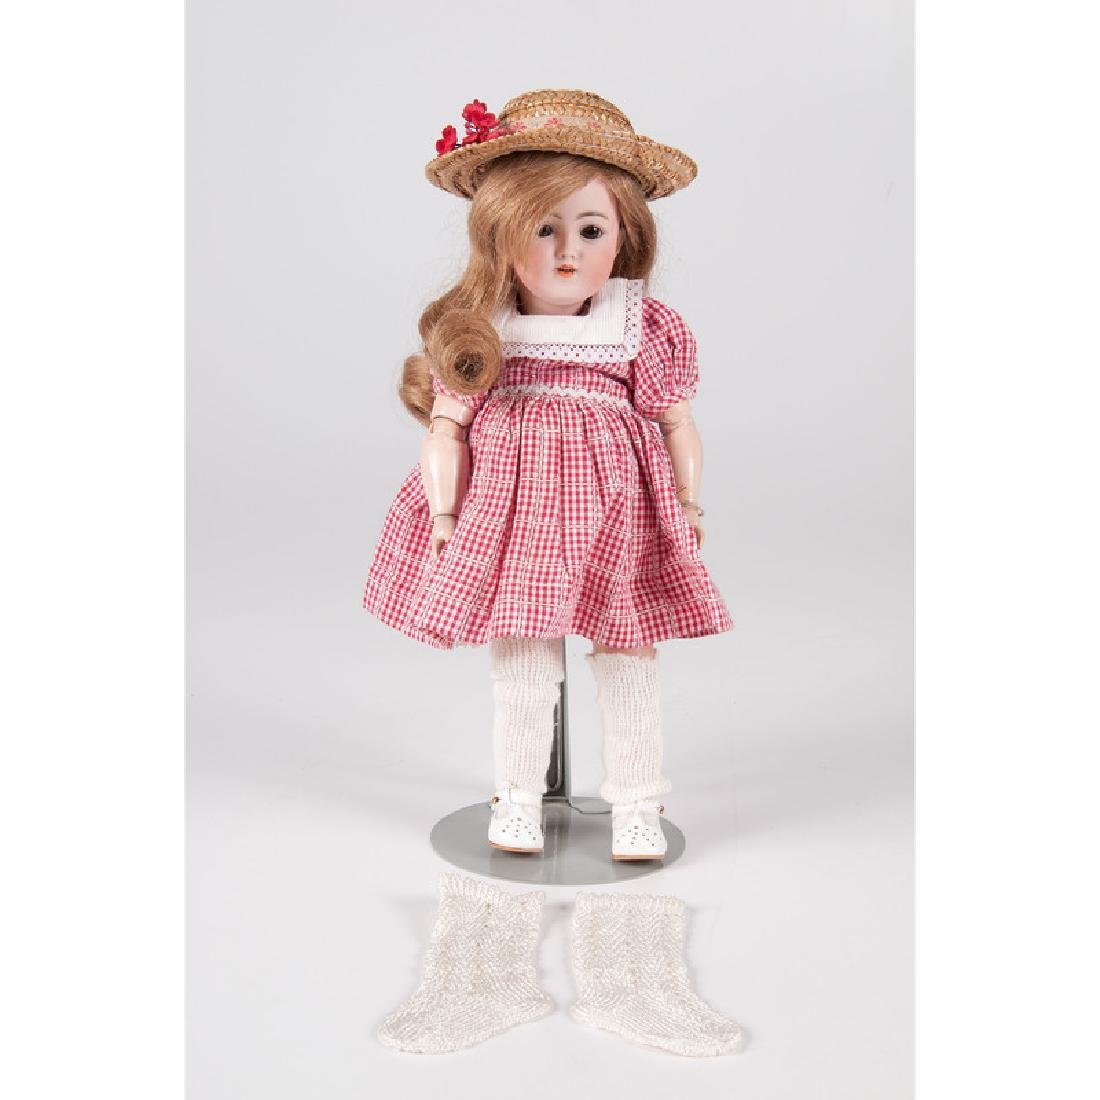 Simon & Halbig #1249 Bisque Head Doll